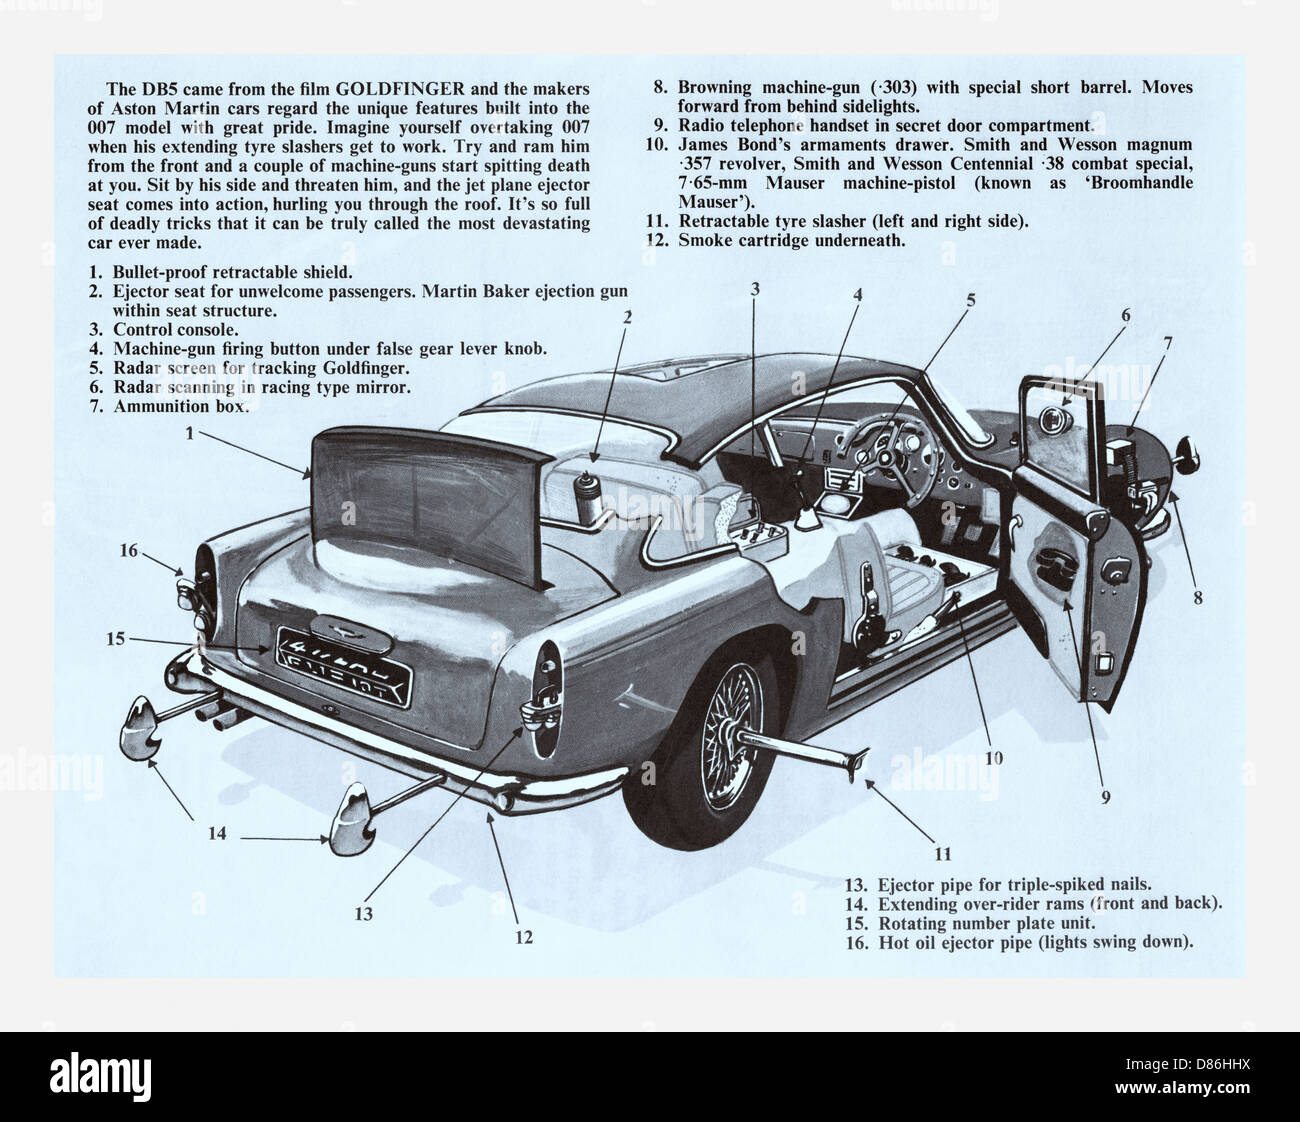 Schematic Blueprint Of The Aston Martin Db5 Famous For Being The Stock Photo Alamy